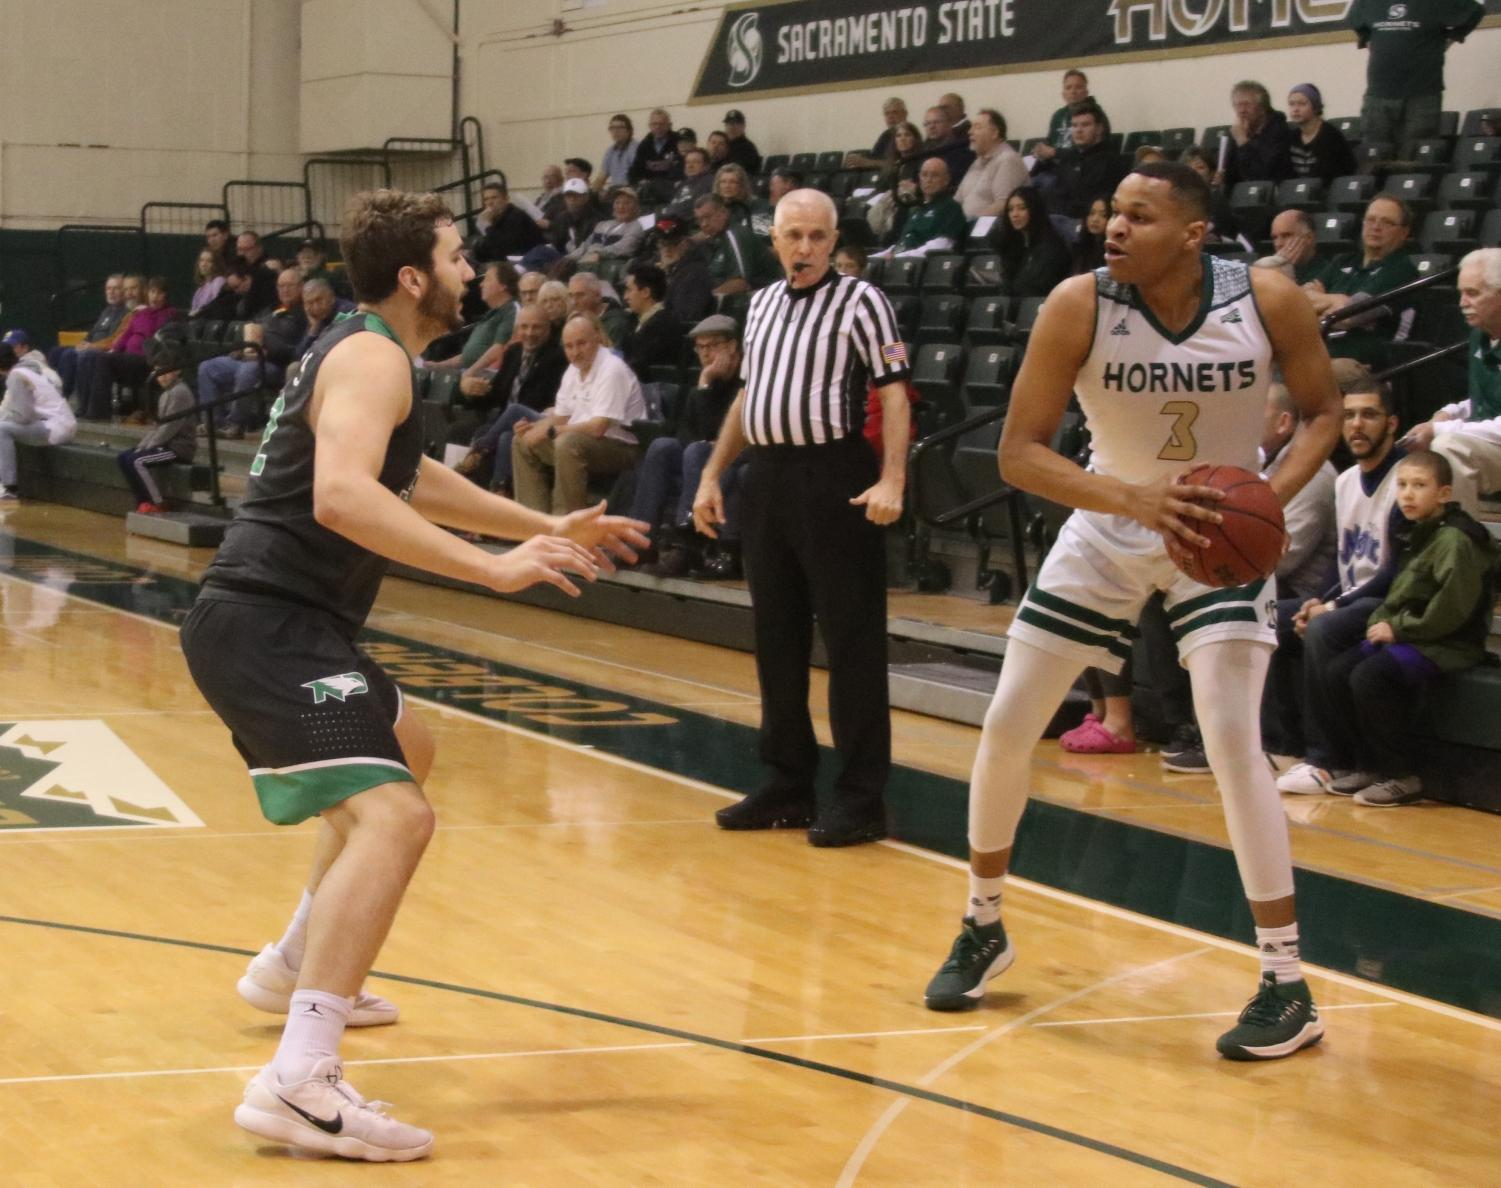 Sacramento State senior forward Justin Strings looks to pass the ball against North Dakota at the Nest on Thursday, March 1, 2018. Strings finished with 21 points in a 90-73 loss to North Dakota.